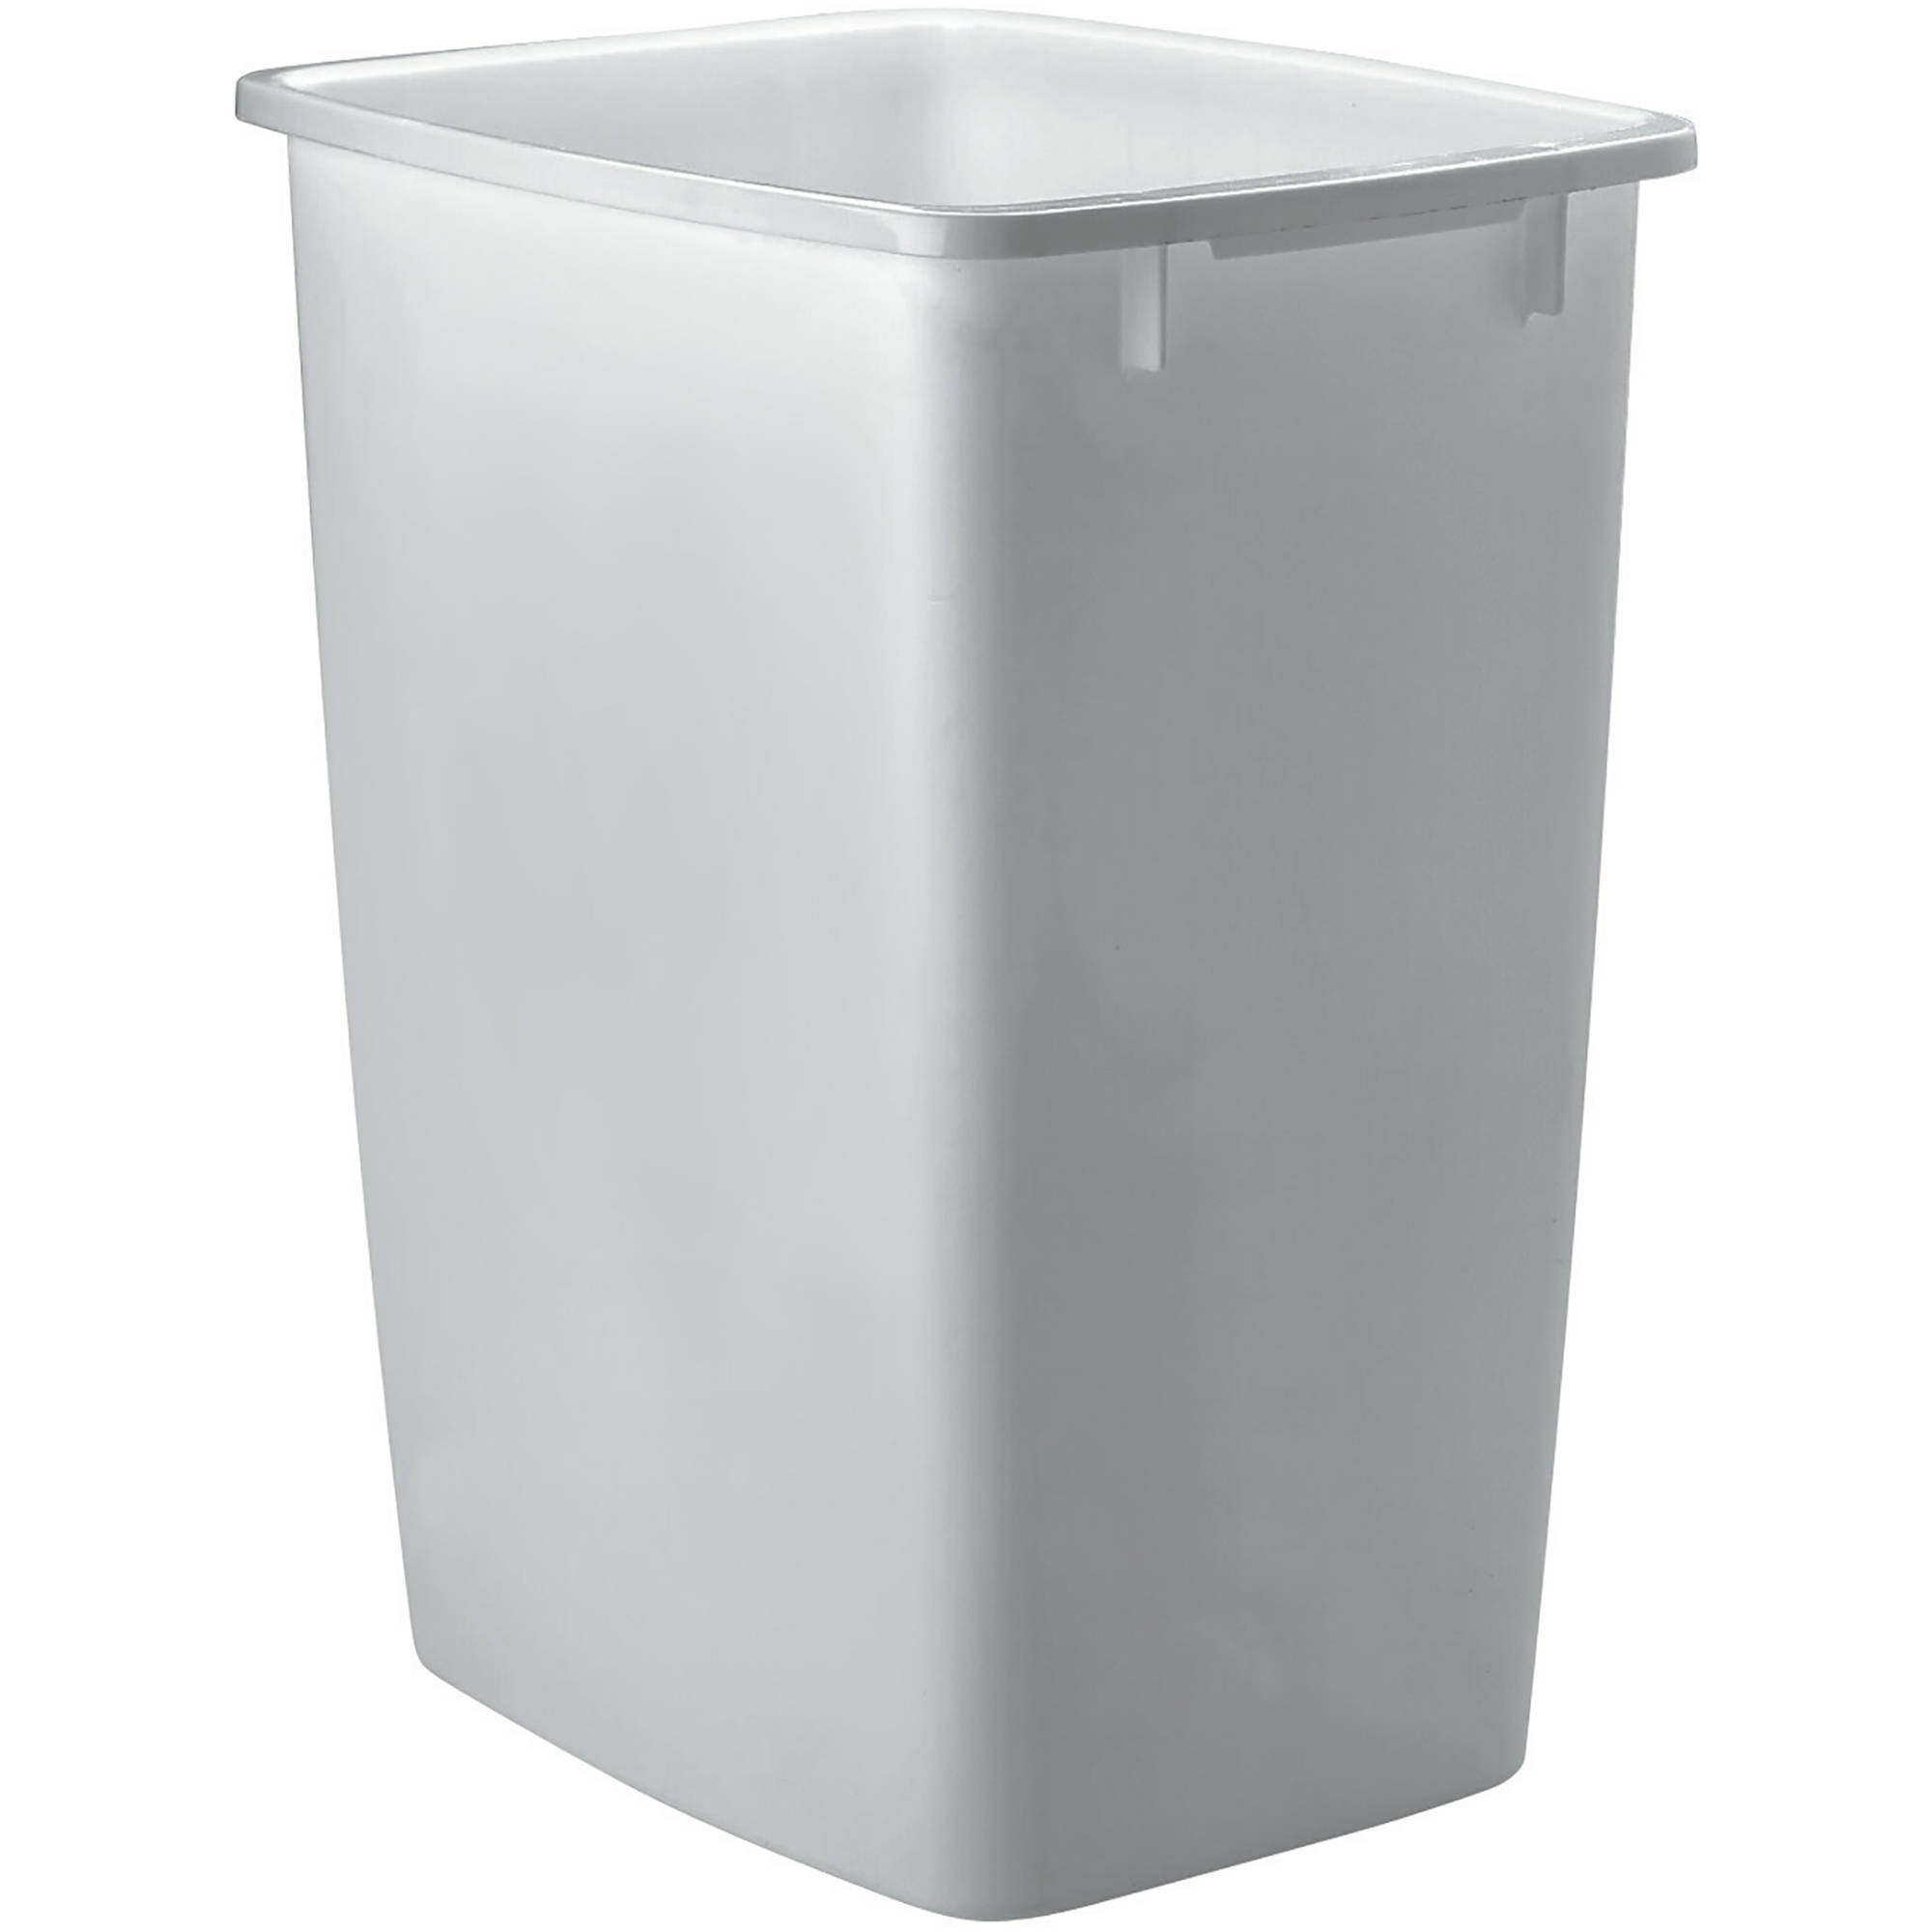 Waste Baskets Rubbermaid Wastebasket 9 Gal White  Walmart